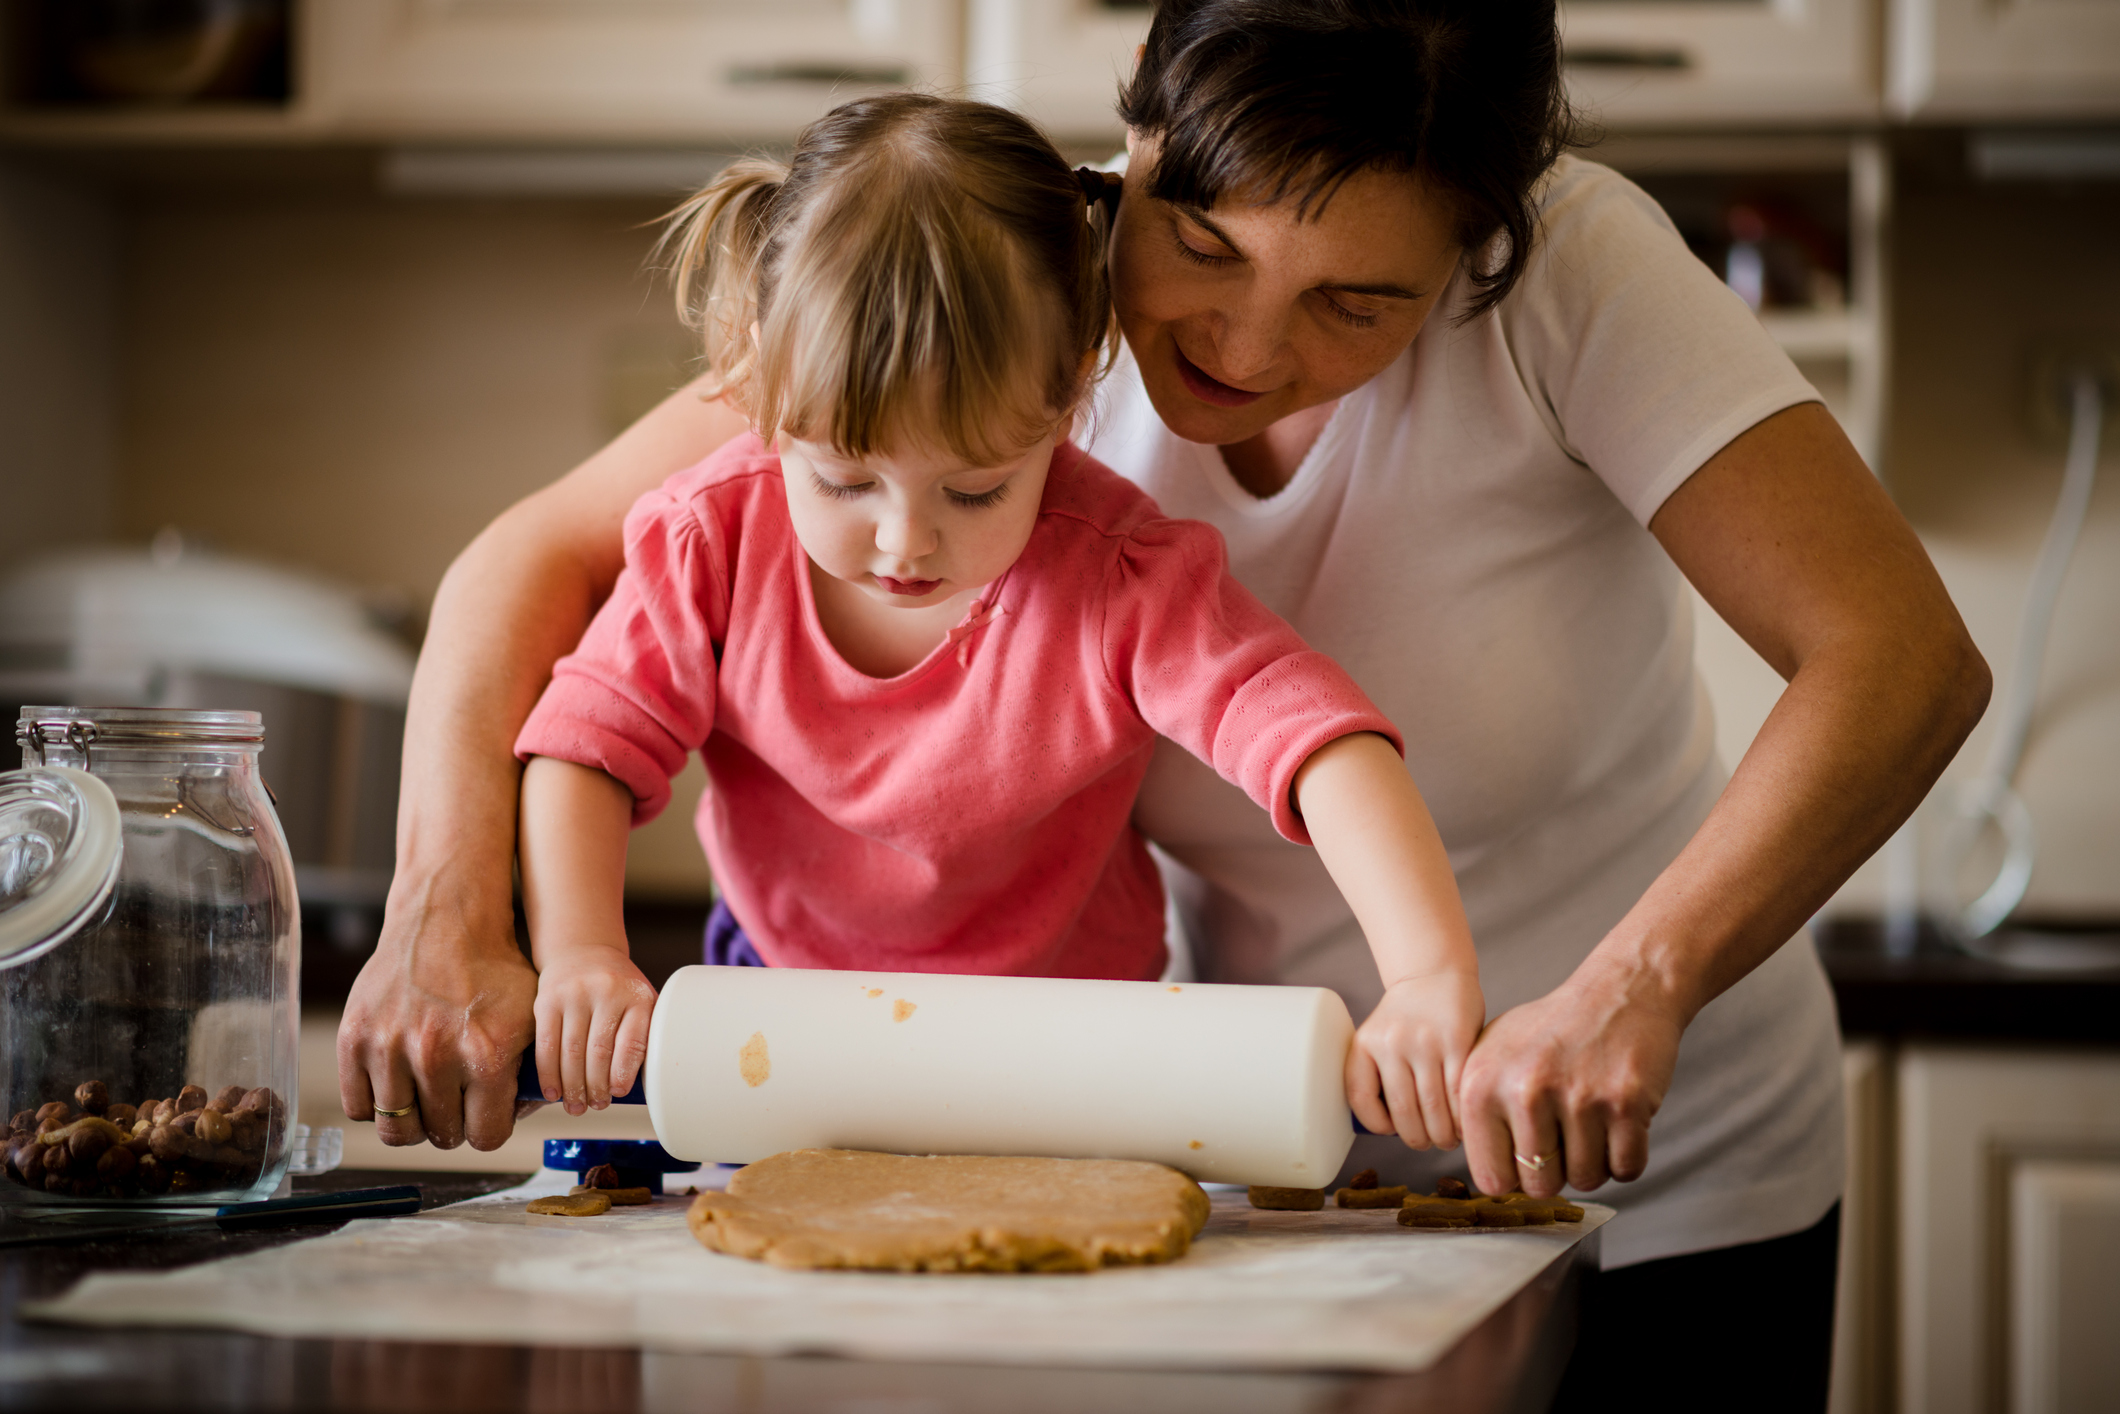 Time in the kitchen is a chance to bond with your kids, let them be creative and teach skills that will last a lifetime. (Photo: Thinkstock)